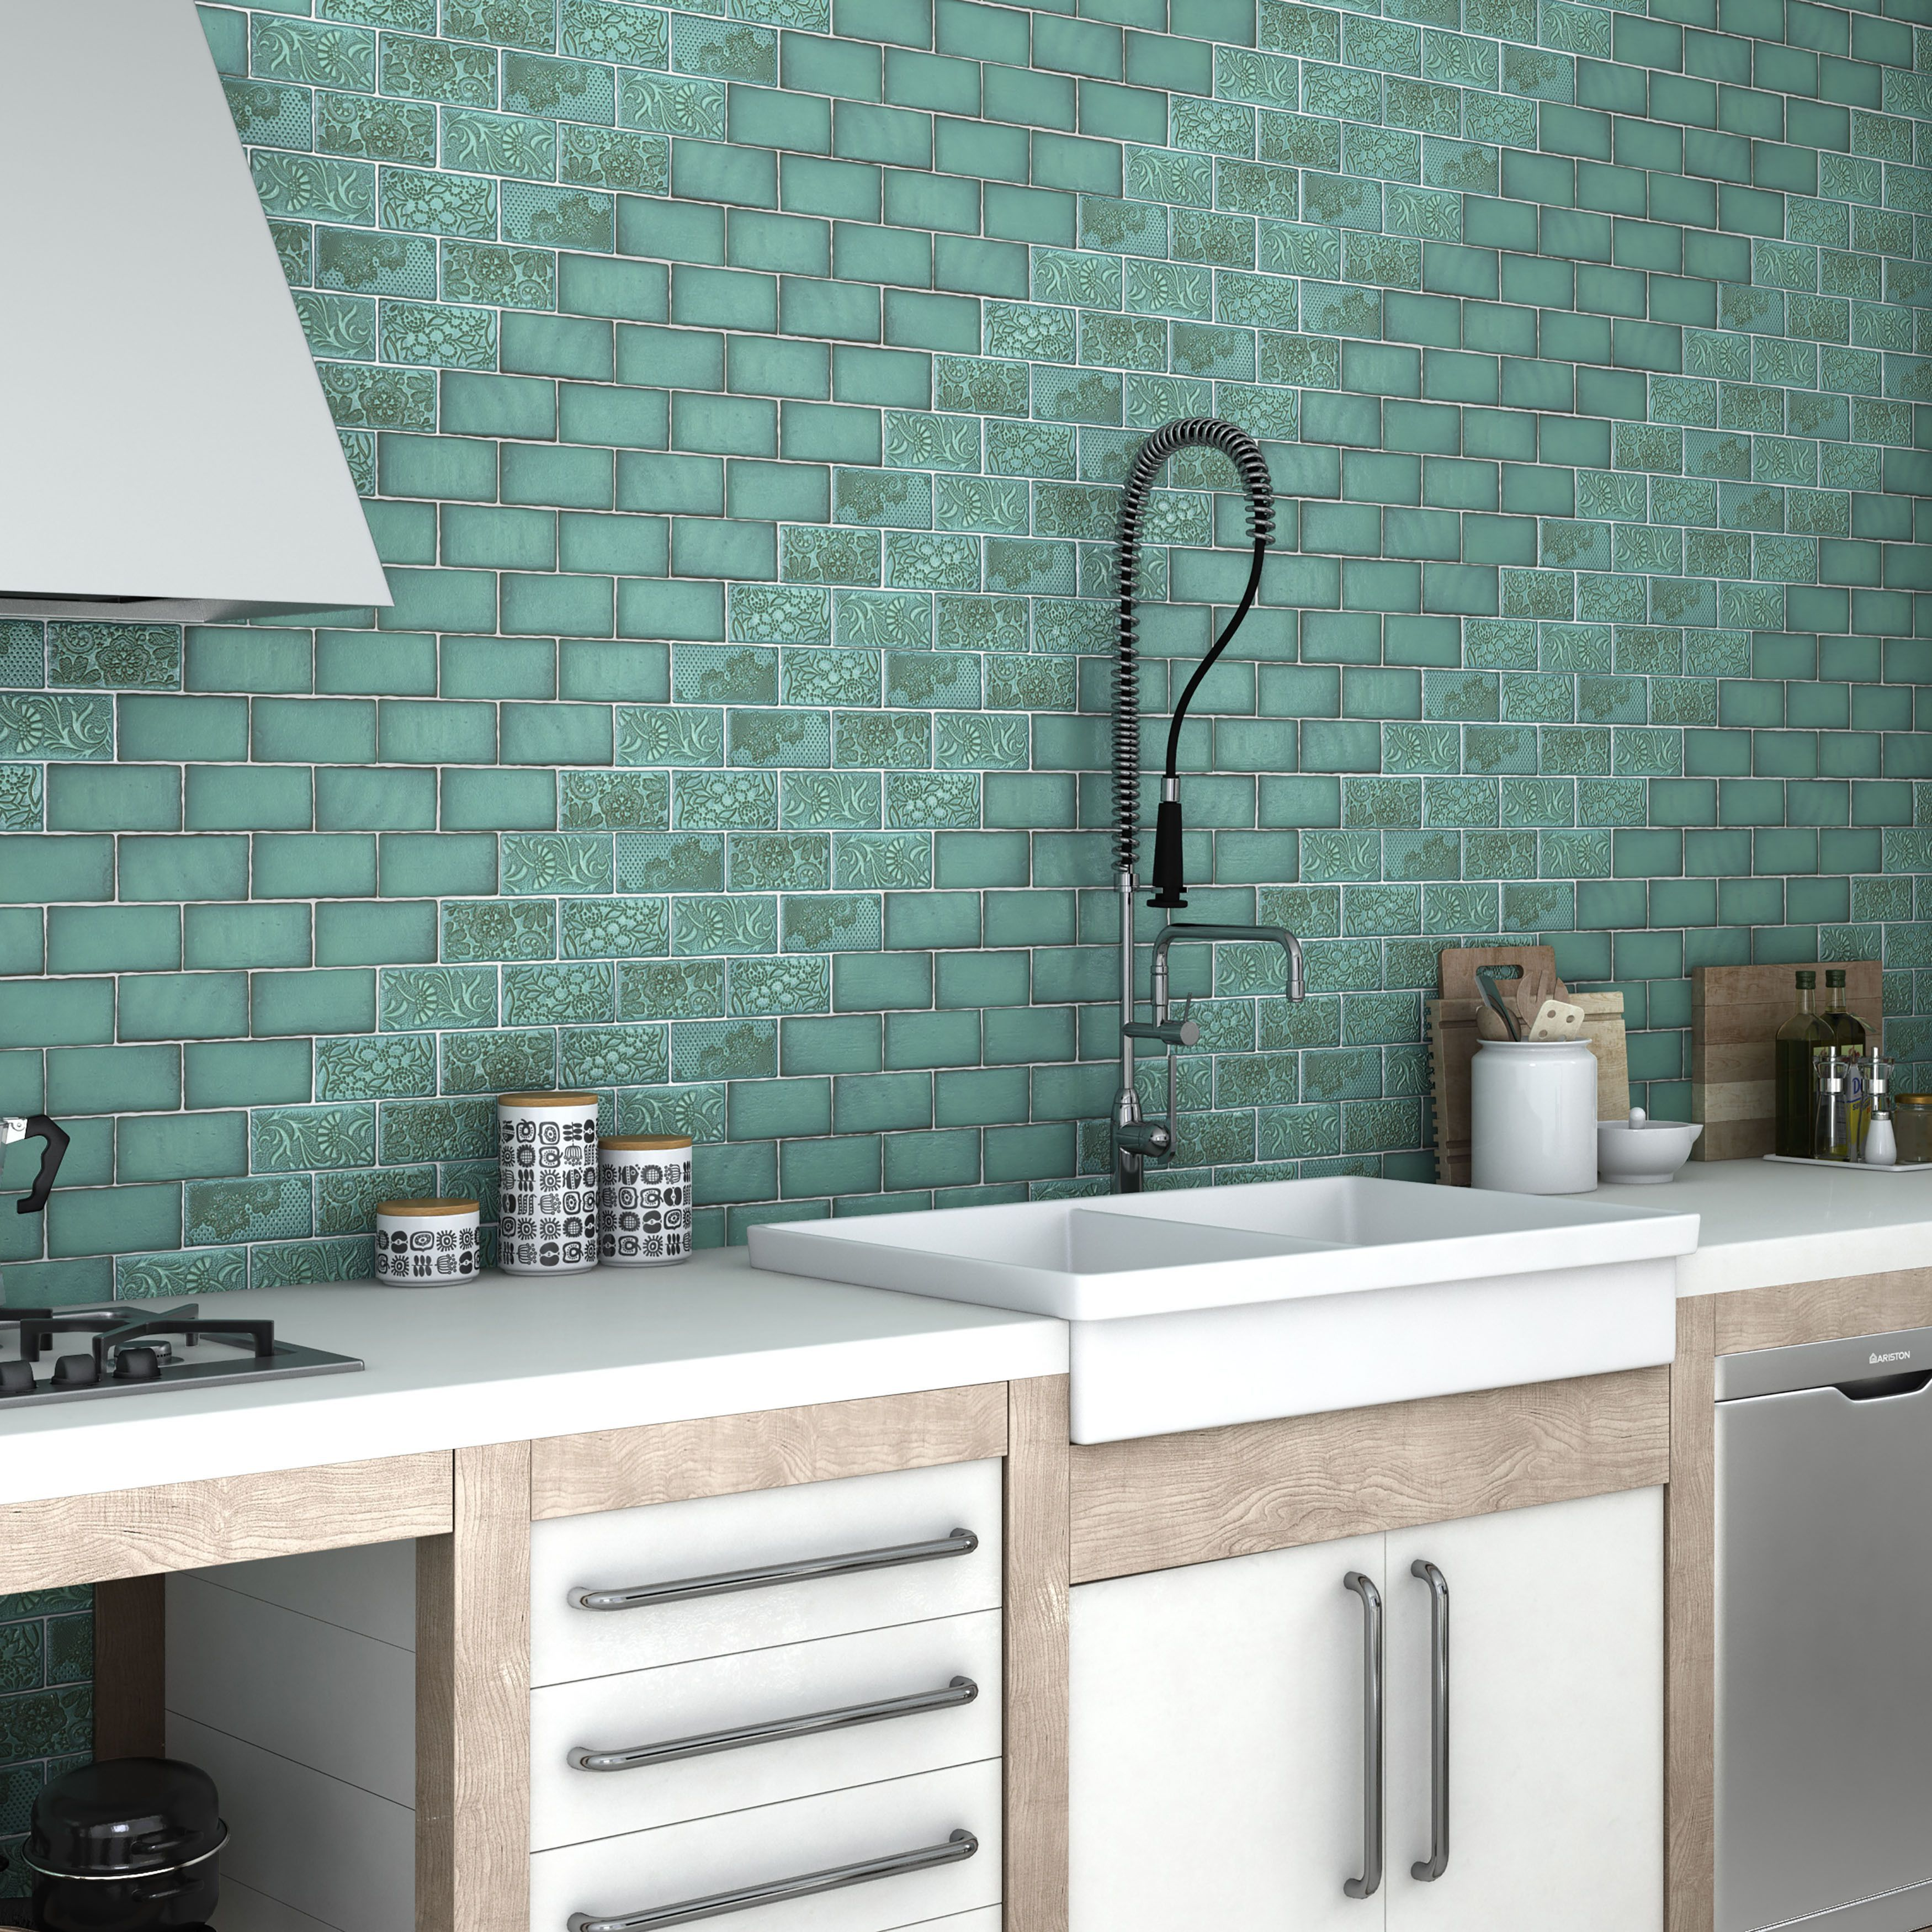 Pin by p. g. on KoolKitch1 | Pinterest | Ceramic wall tiles, Wall ...